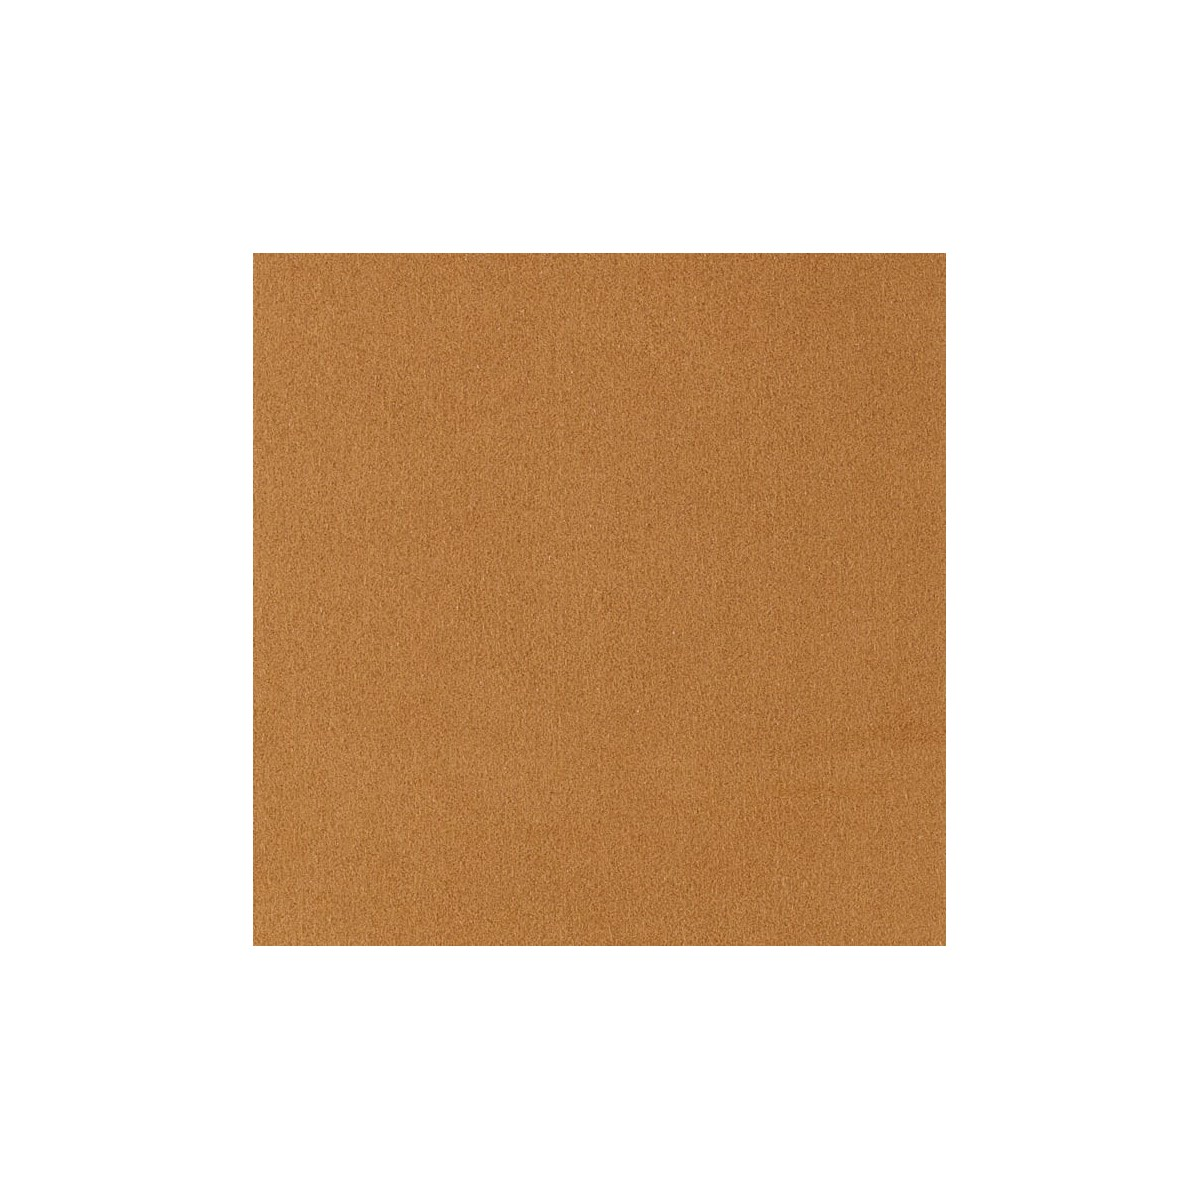 Ultrasuede ATZEC LEATHER 225 x 230 mm 1pz